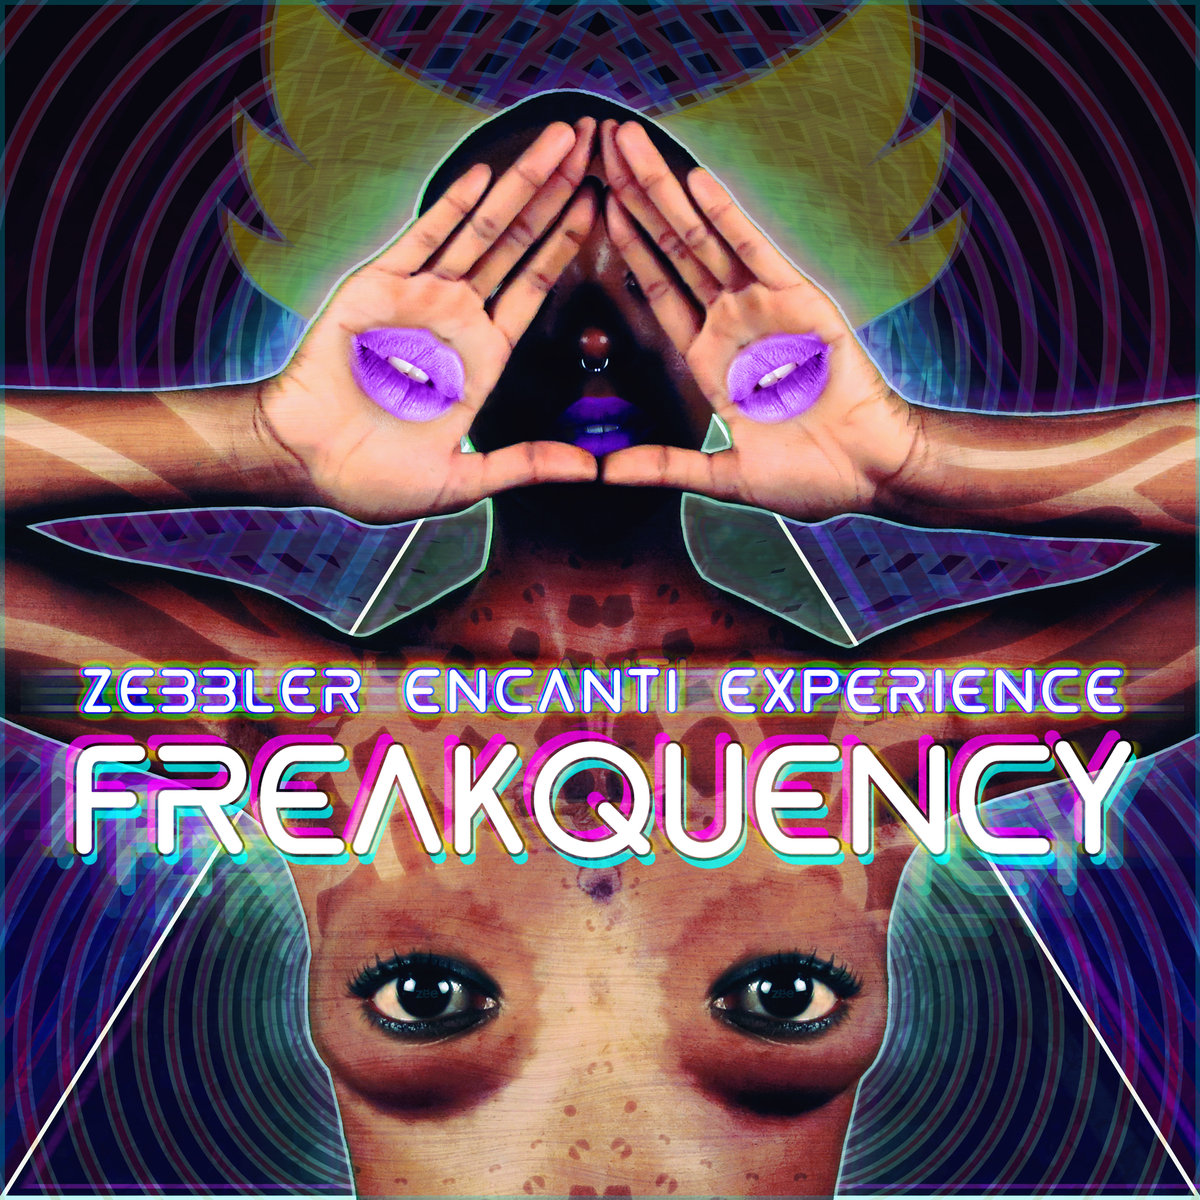 Zebbler Encanti Experience - Freakquency @ 'Freakquency' album (boston, psychedelic)